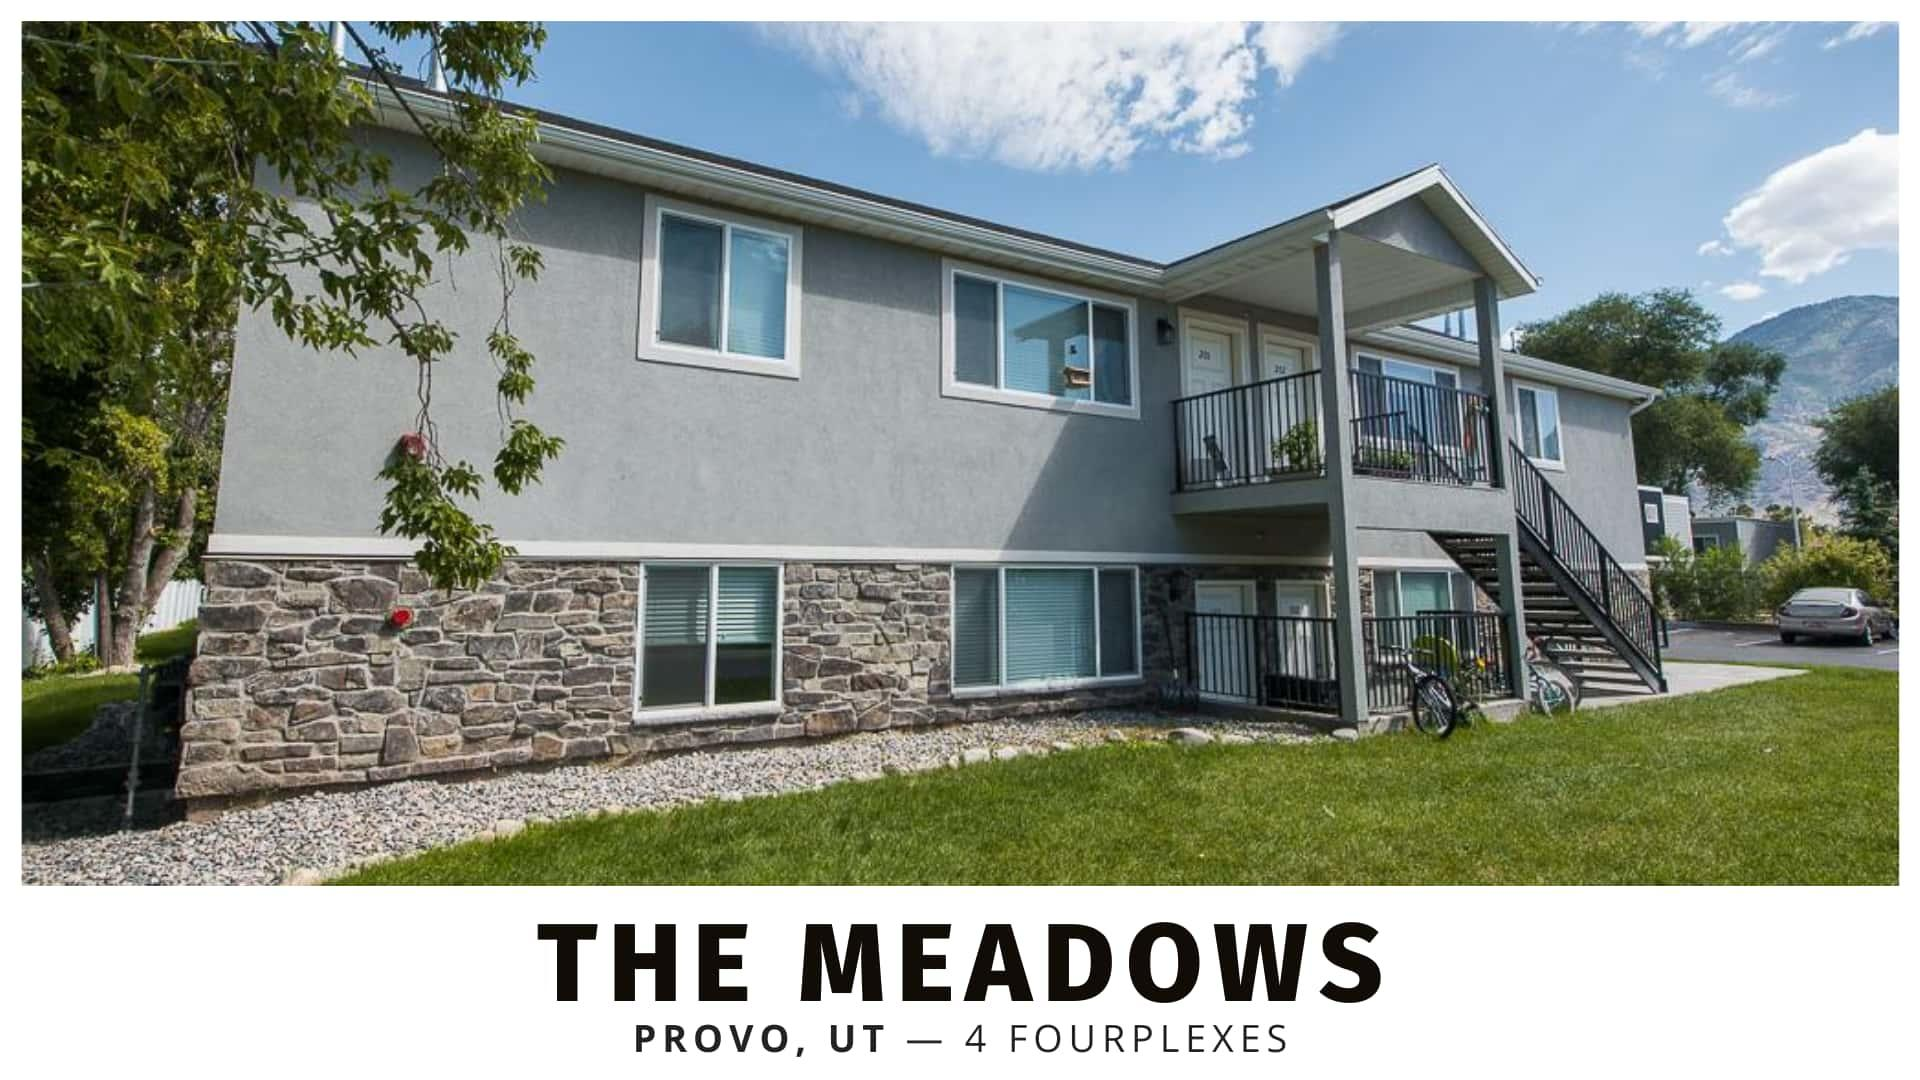 The Meadows fourplexes in Provo, Utah